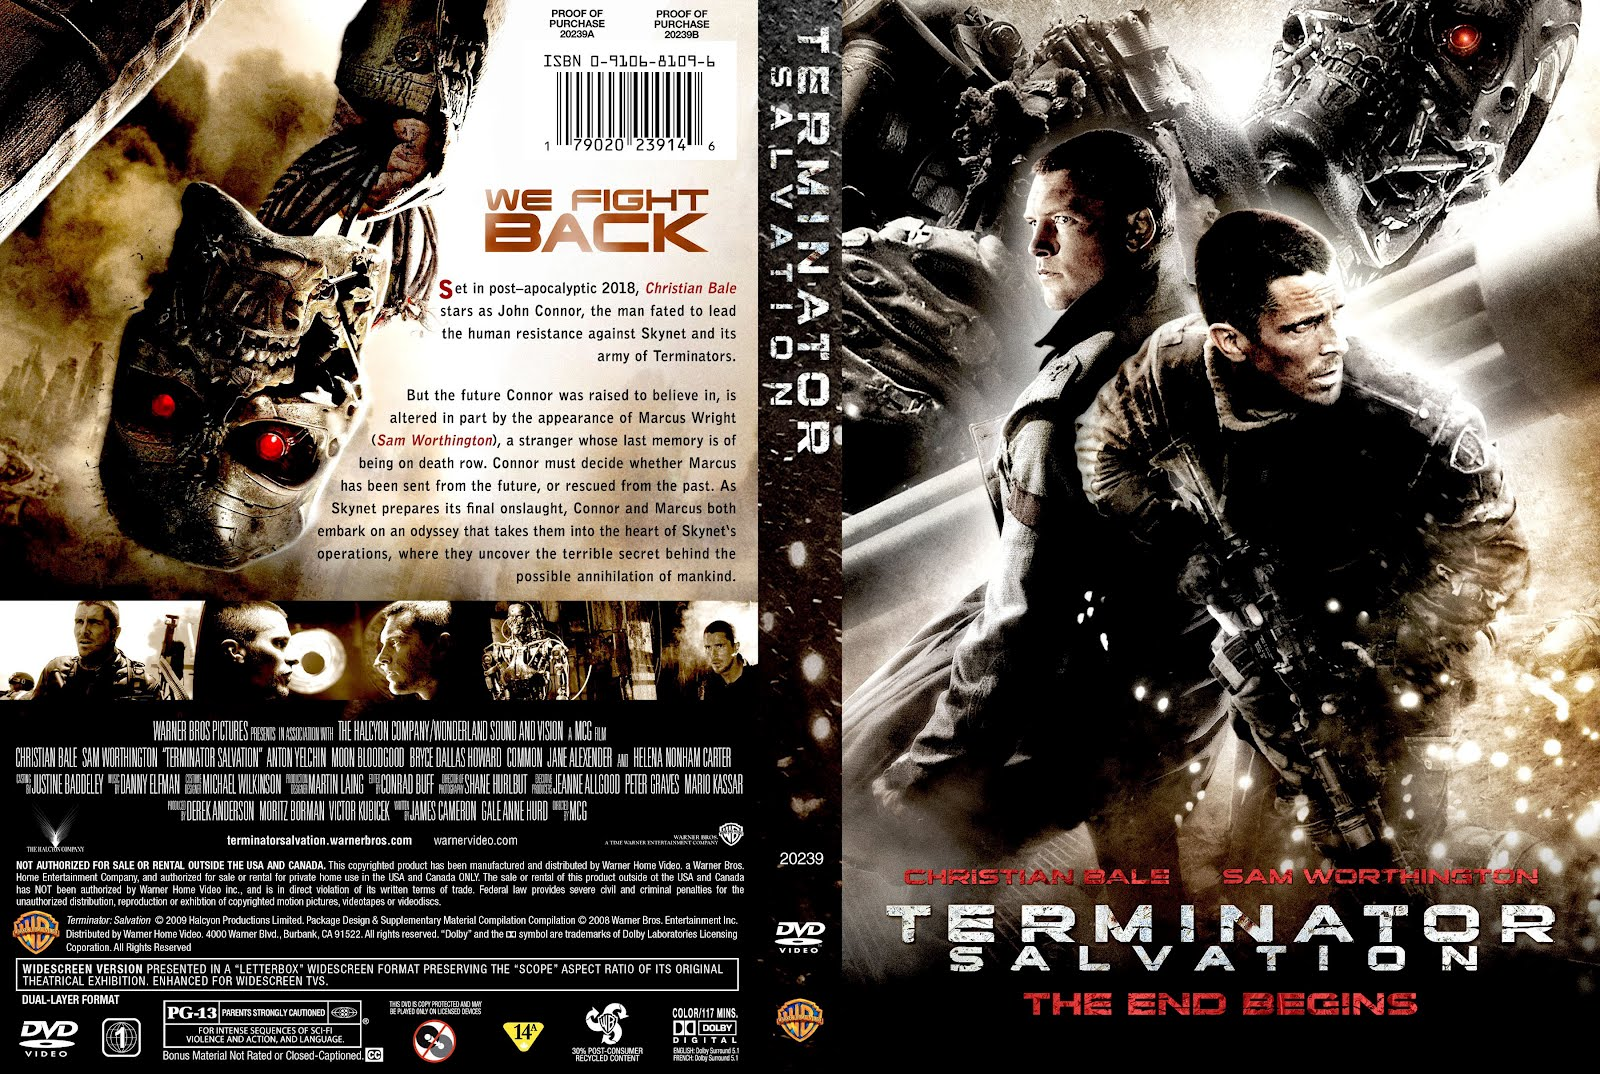 Movie Posters 2009: Fight Christian: Terminator Salvation (2009)